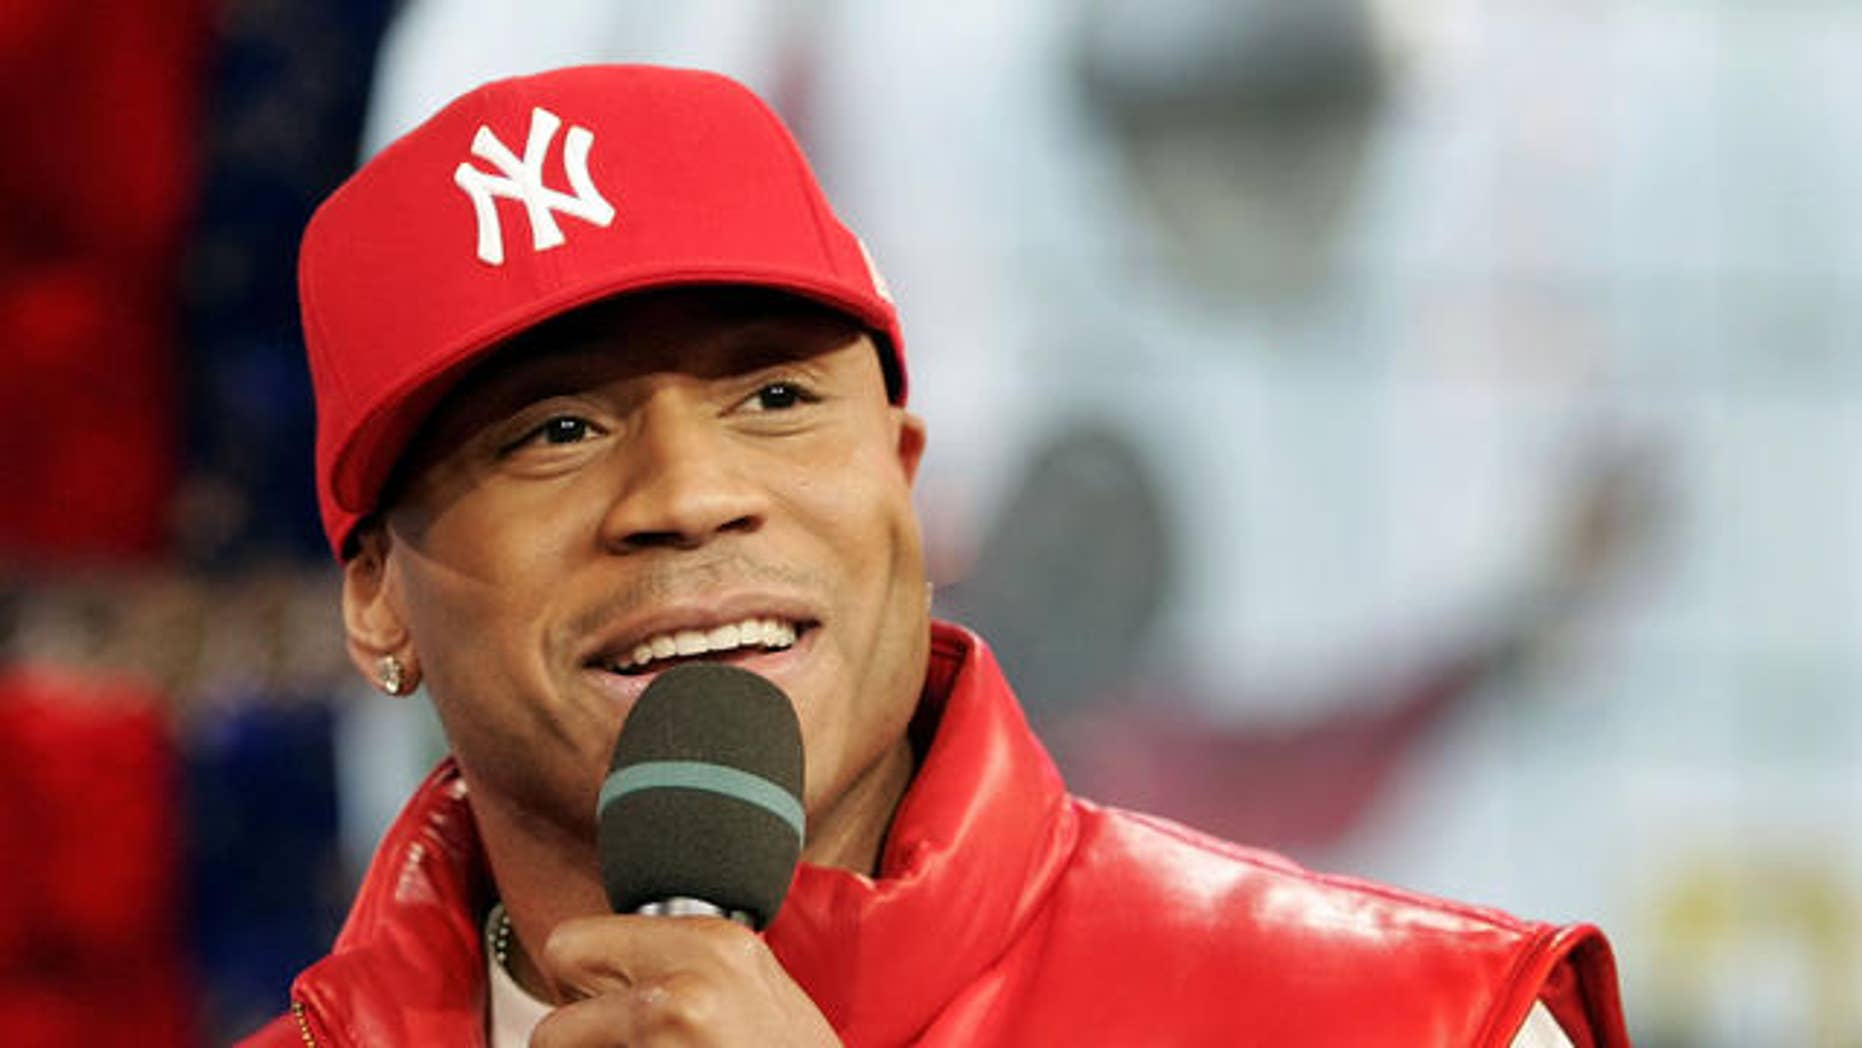 """Actor and Hip Hop artist LL Cool J appears onstage during MTV's """"Total Request Live"""" show at the MTV Time Square Studios, Tuesday, Jan. 10, 2006 in New York City.   (AP Photo/Jeff Christensen)"""